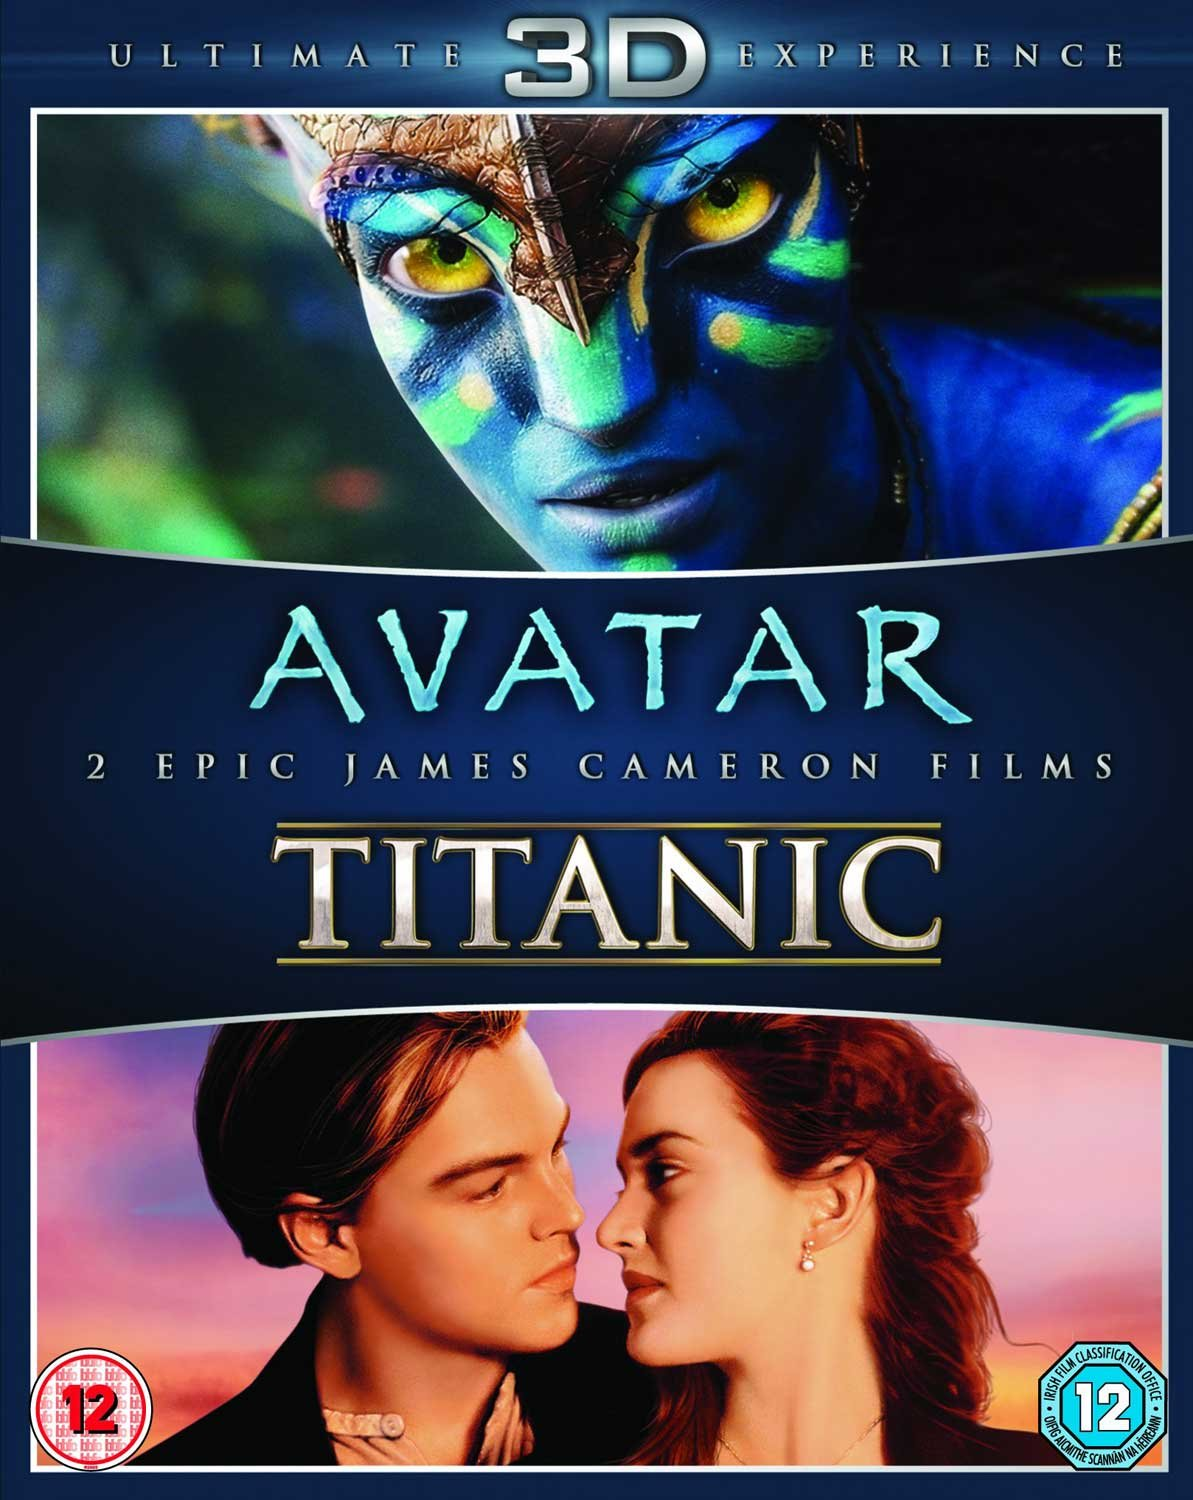 com james cameron s avatar titanic blu ray 3d double  com james cameron s avatar titanic blu ray 3d double pack kate winslet leonardo dicapreo james cameron movies tv